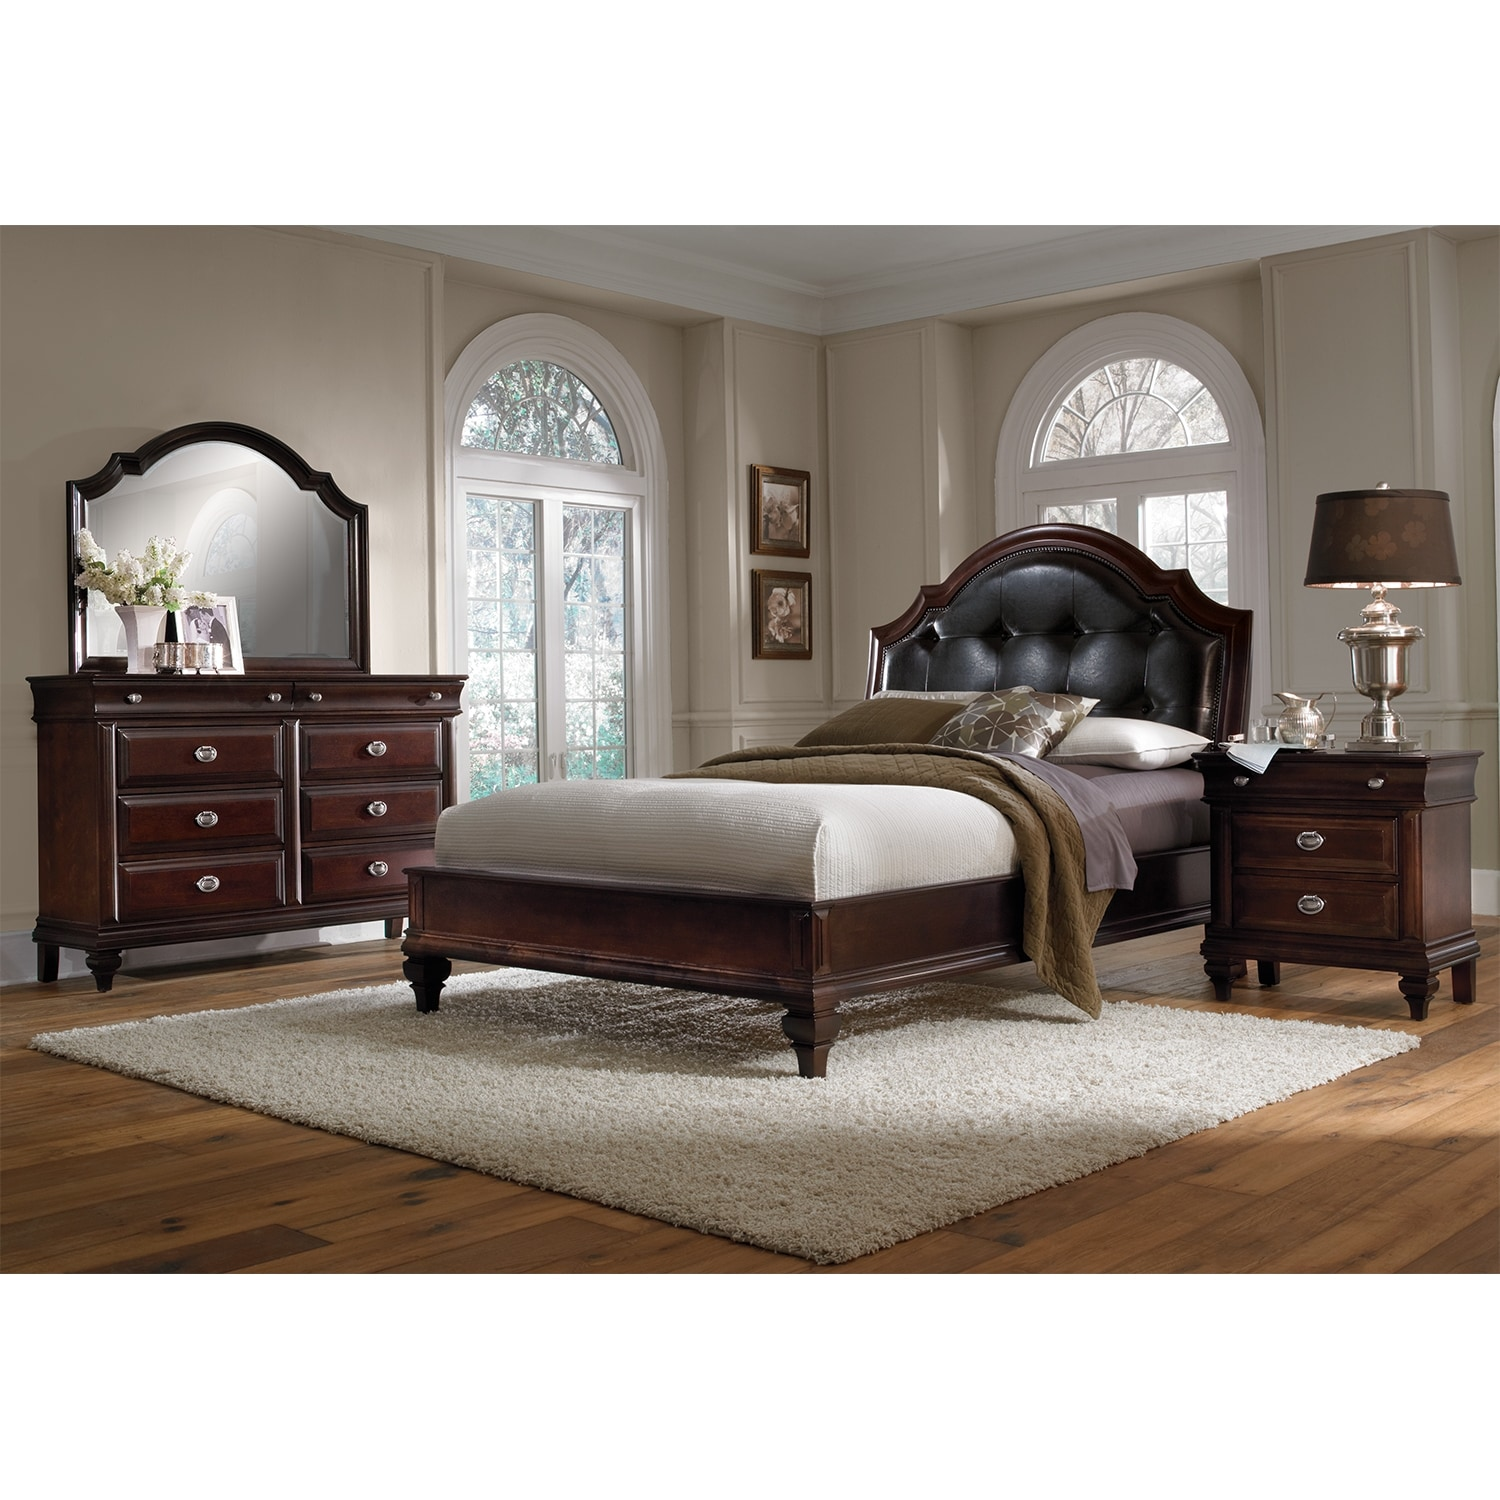 Bedroom Furniture - Manhattan 6 Pc. Queen Bedroom